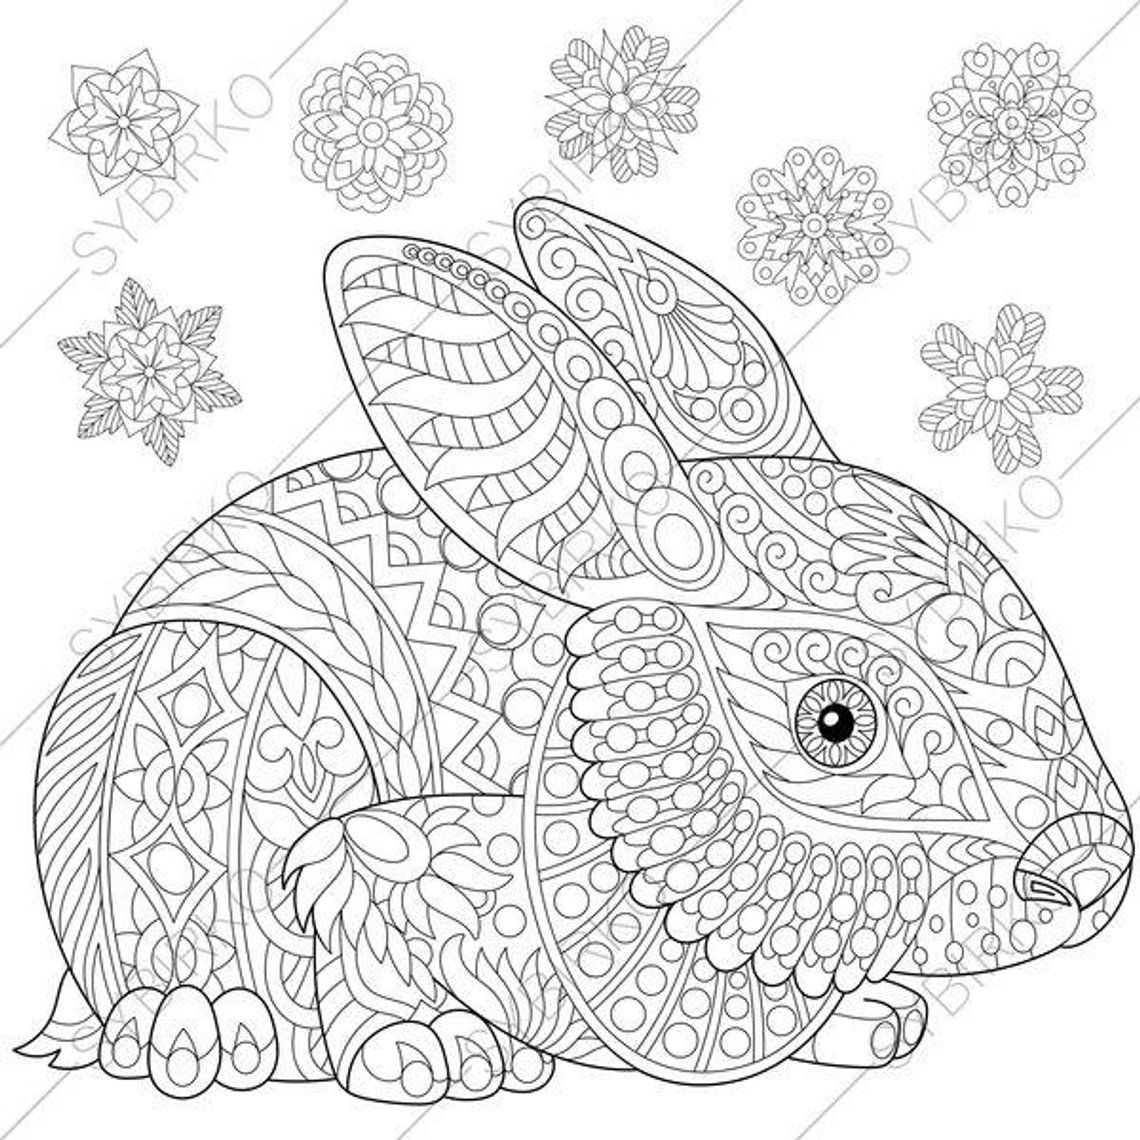 Easter Bunny Rabbit Hare 3 Coloring Pages Animal Coloring